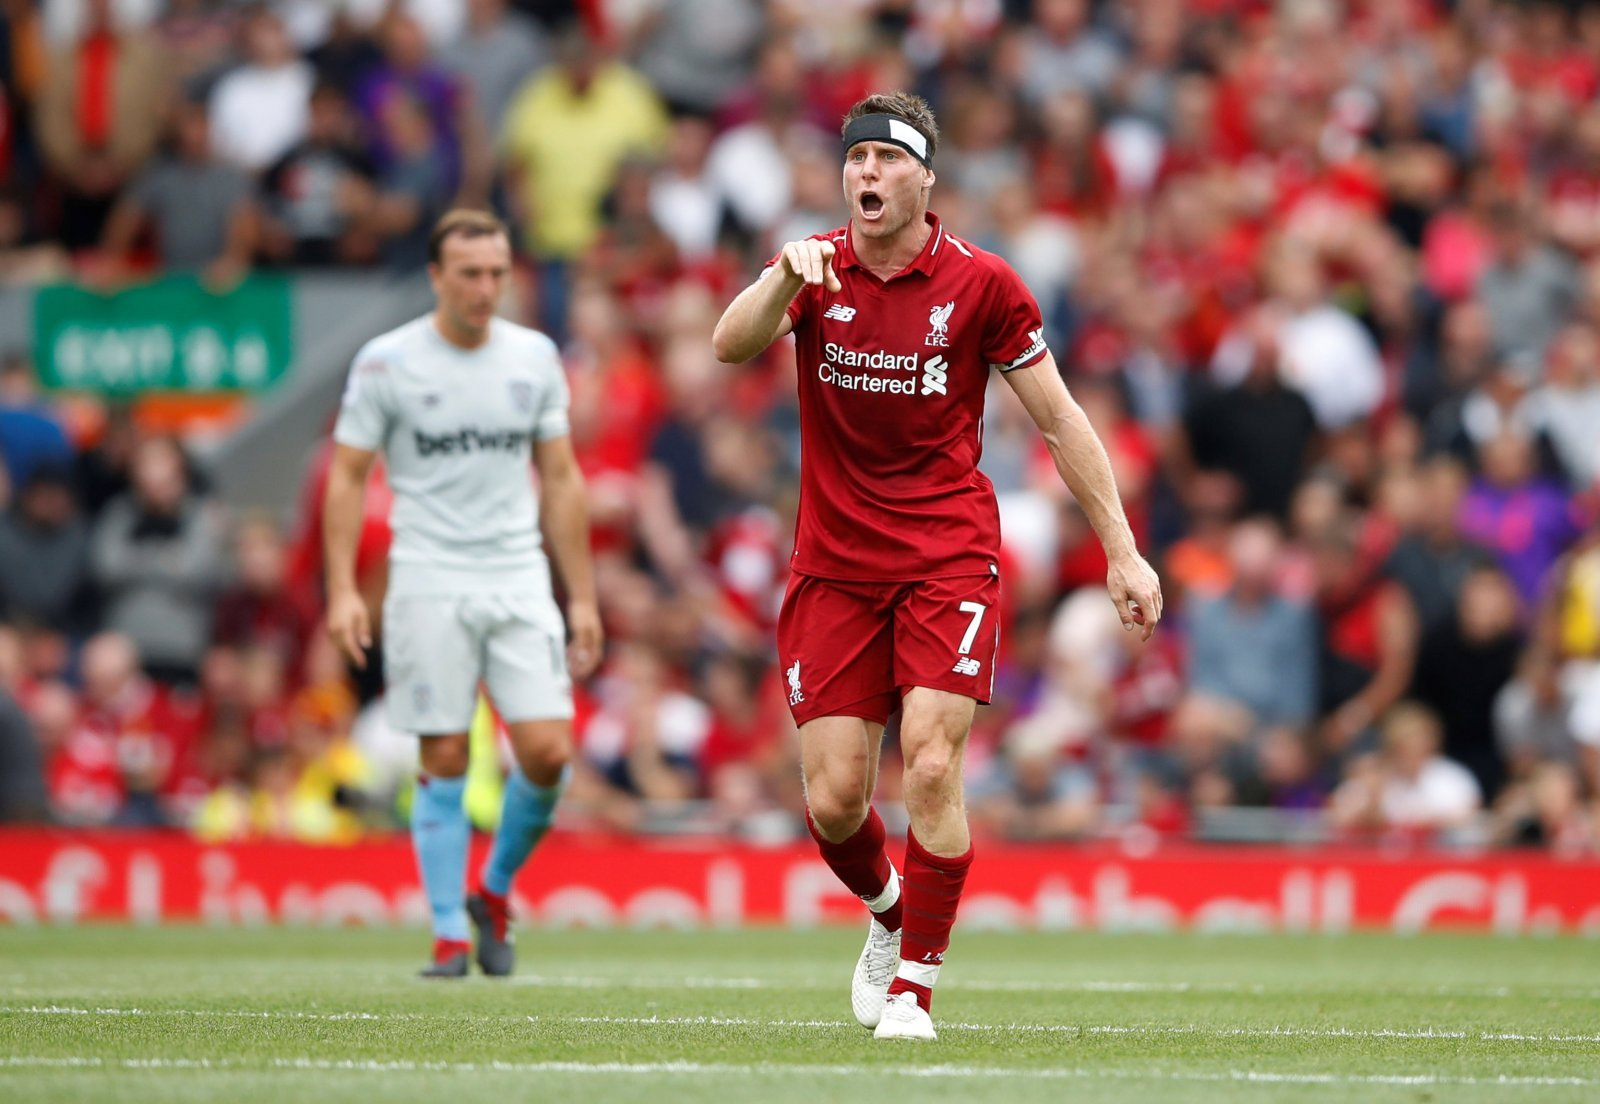 Liverpool should do all they can to reward the evergreen James Milner